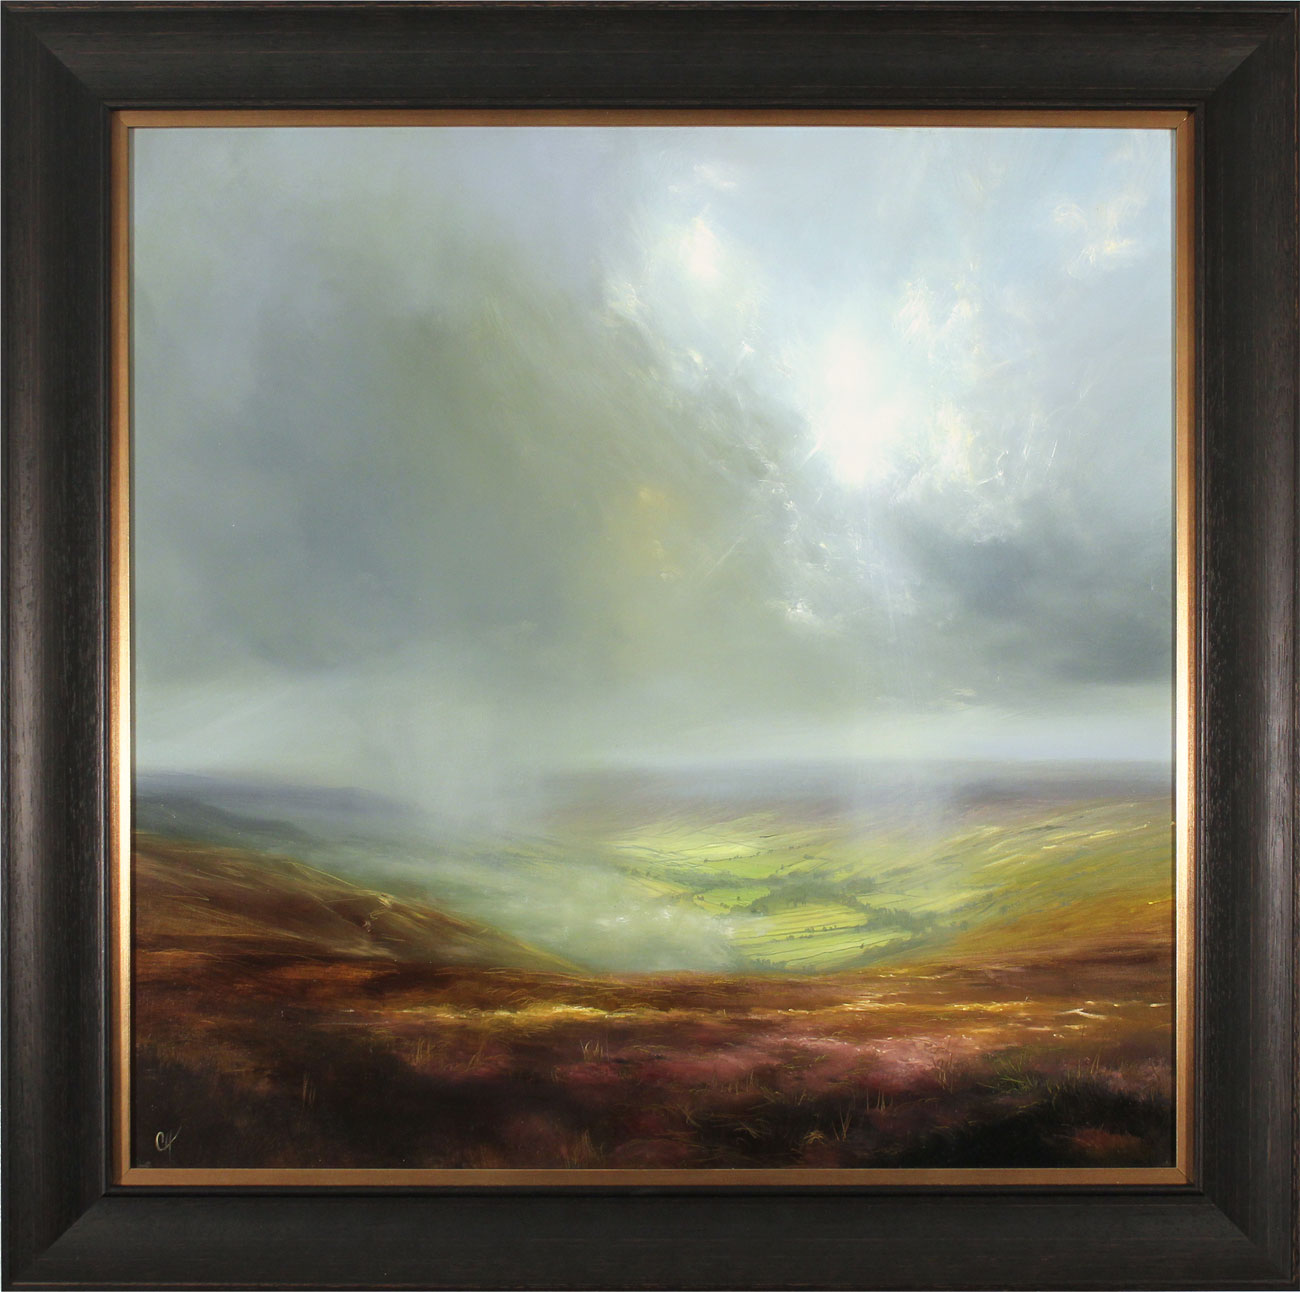 Clare Haley, Original oil painting on panel, A Yorkshire Moment, click to enlarge